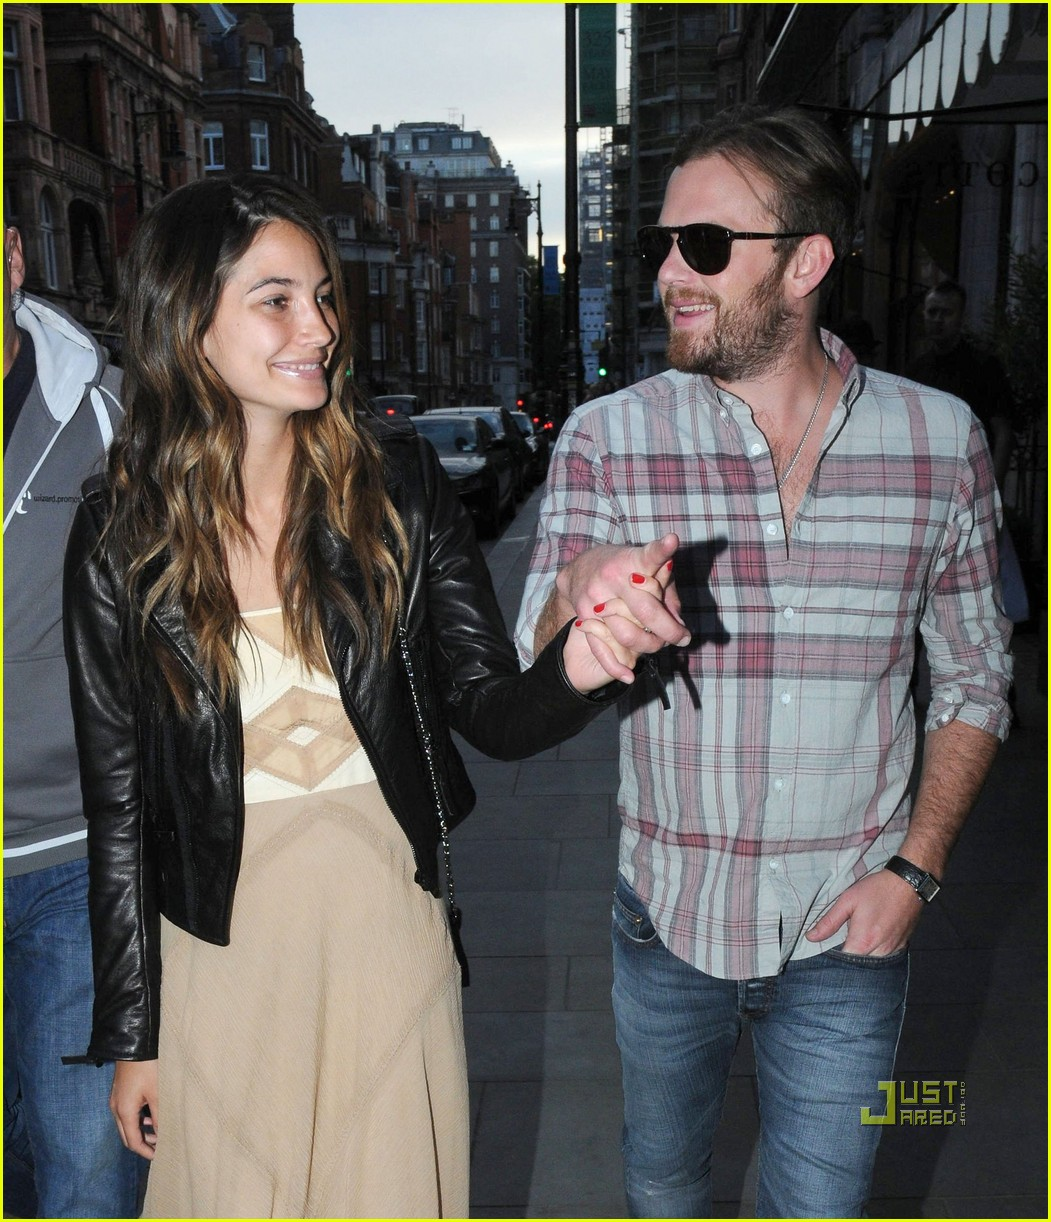 Lily Aldridge and Caleb FollowillLily Aldridge And Caleb Followill 2014